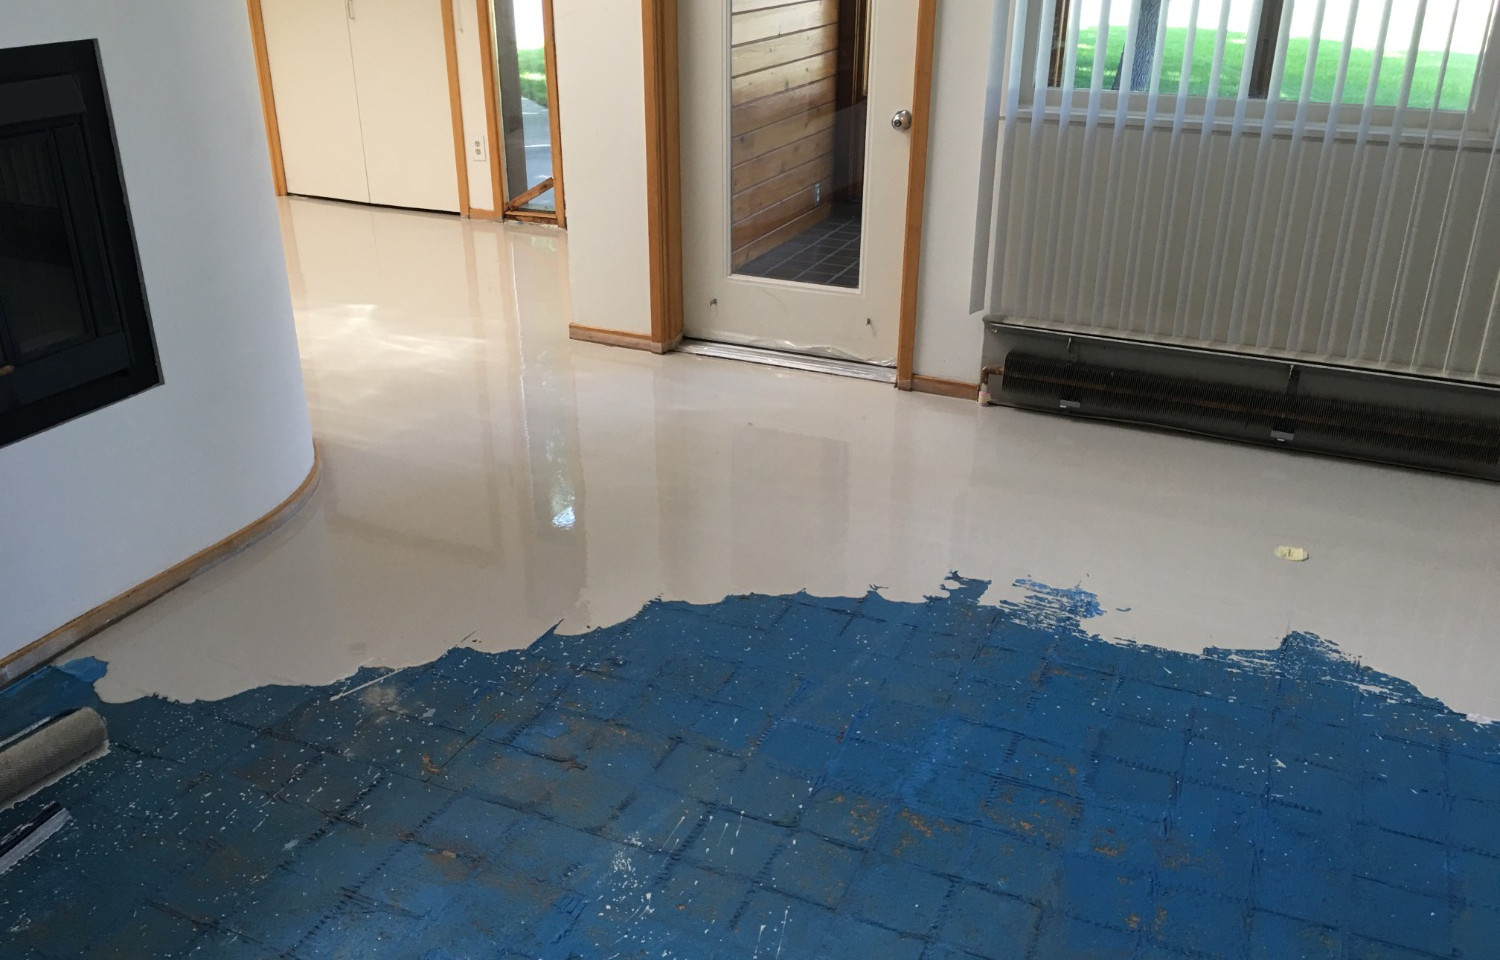 Leveled floor with applied epoxy coating